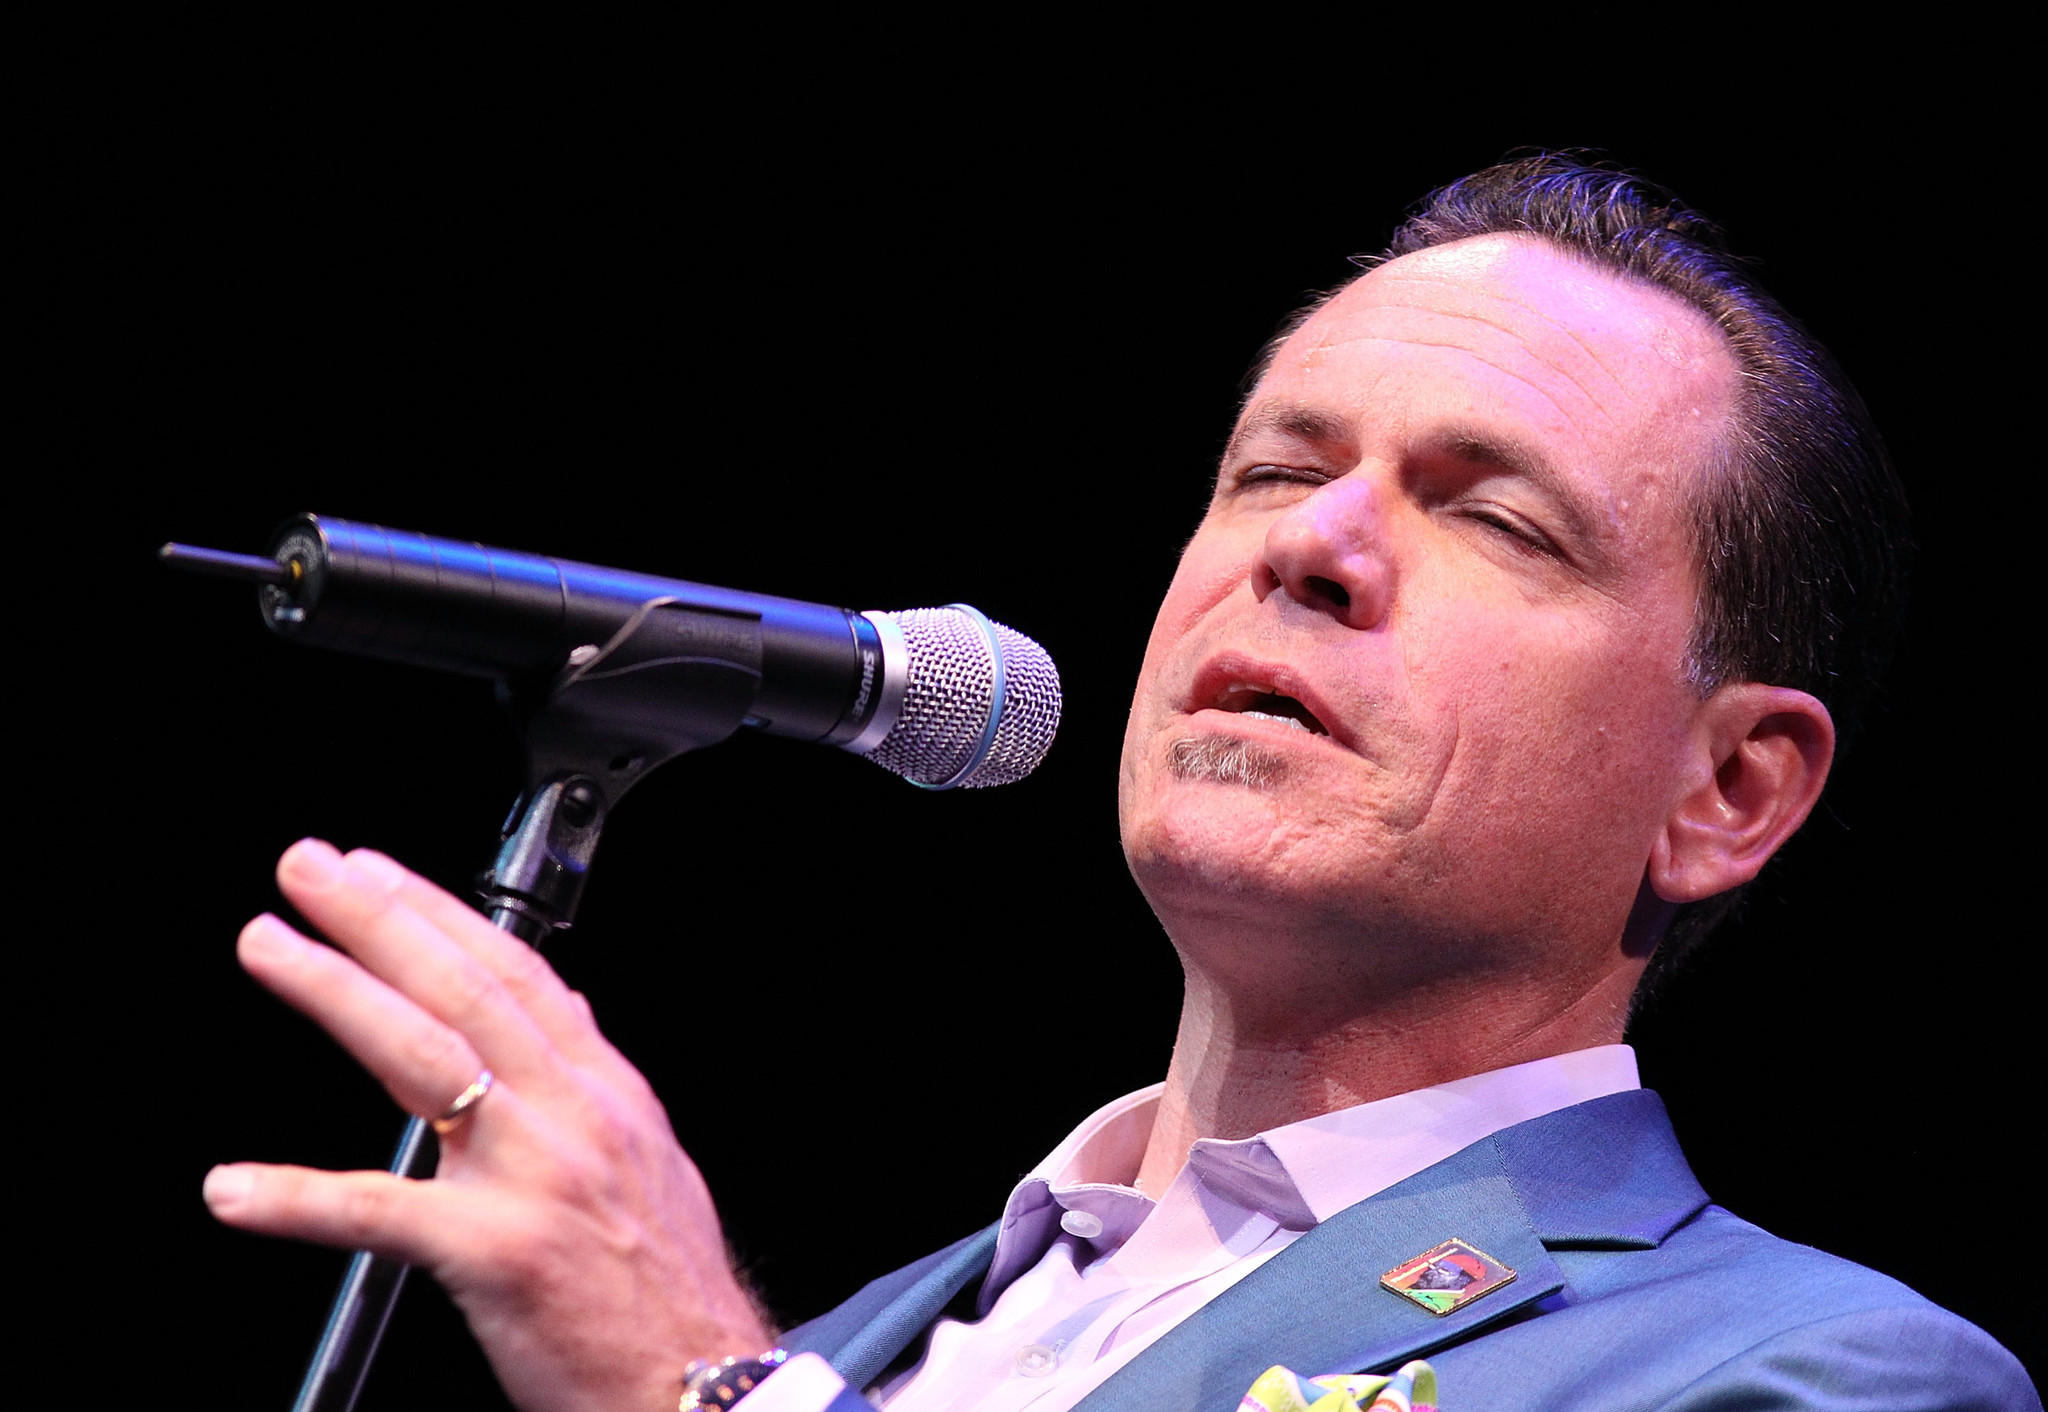 Kurt Elling performs at the 2013 Thelonious Monk International Jazz Saxophone Competition at The John F. Kennedy Center for Performing Artsin Washington, DC.